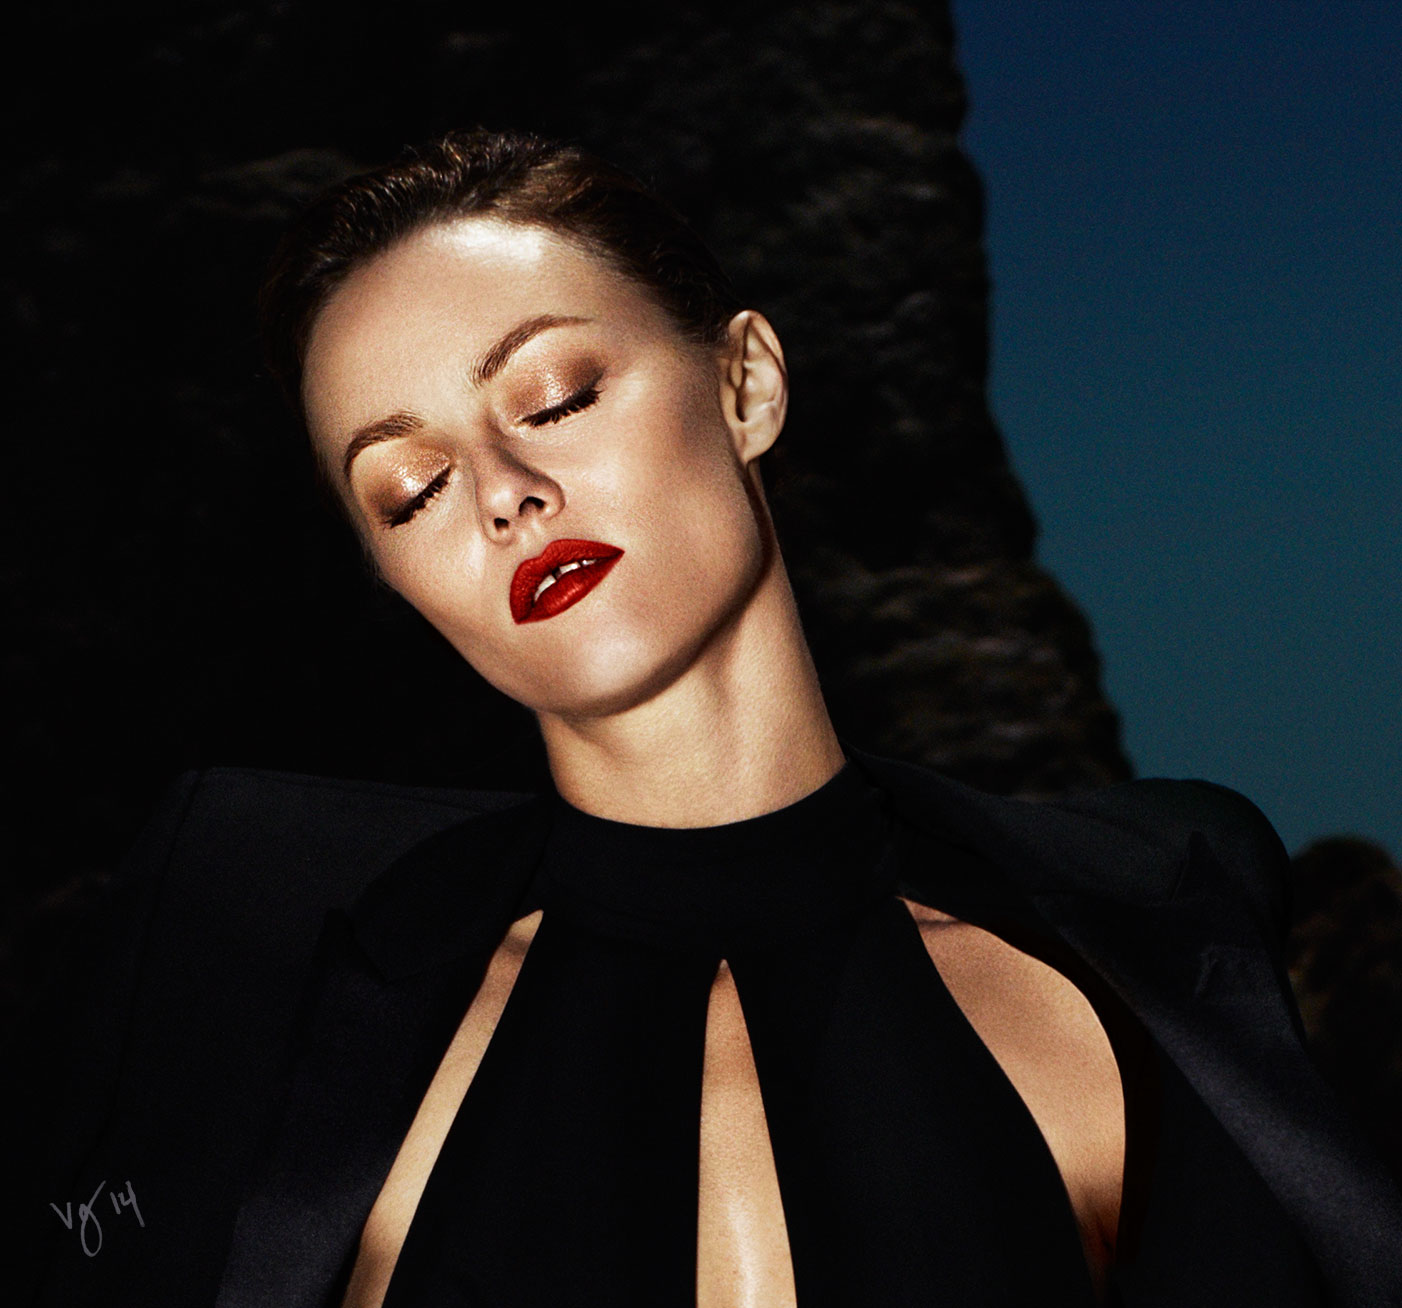 THE ORANGE-RED LIP TUTORIAL featuring Vanessa Paradis by Sabrina Bedrani  |  #VioletGrey, The Industry's Beauty Edit